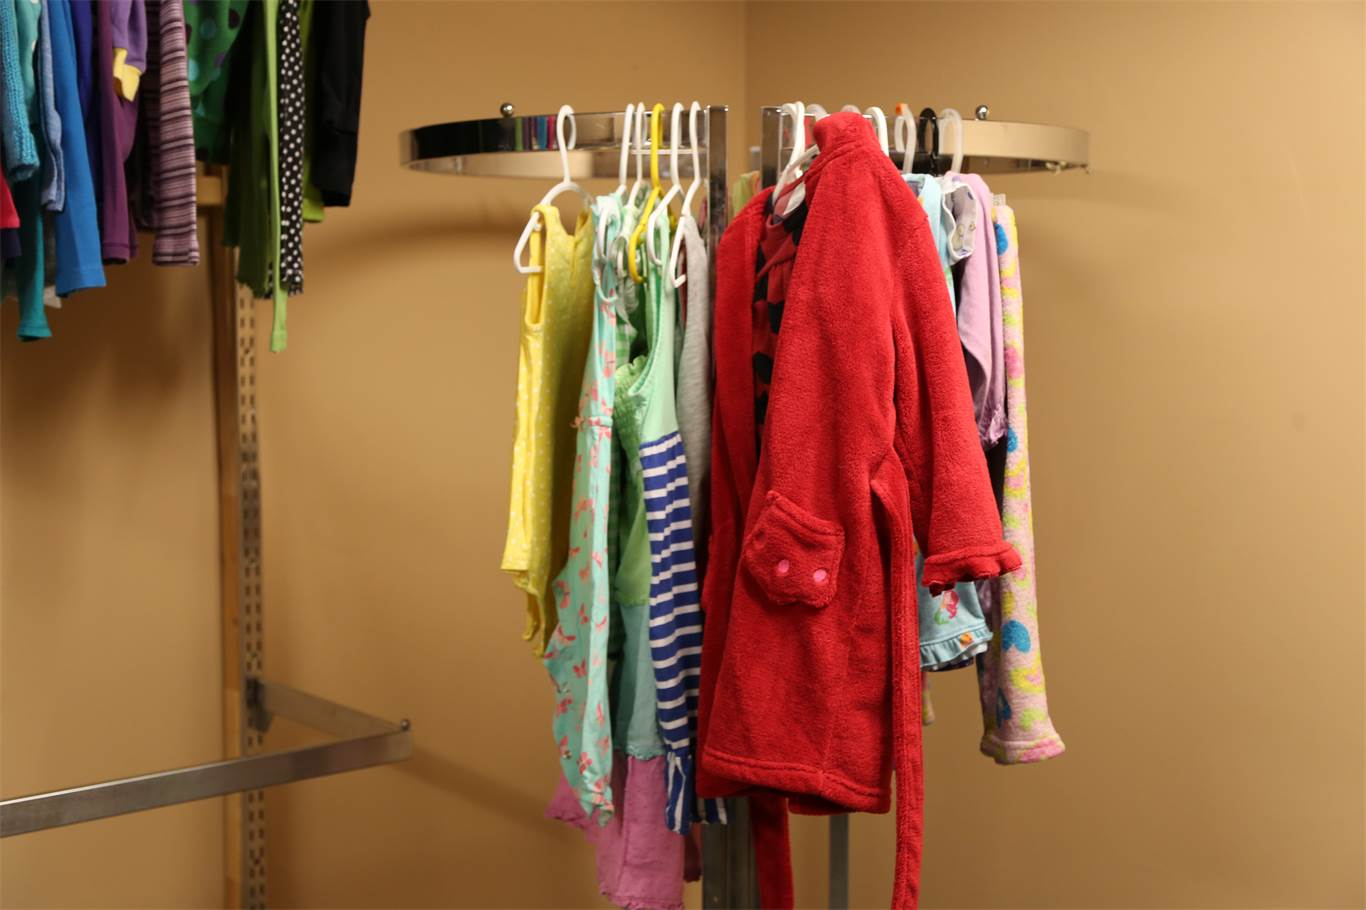 The Annex is currently low on baby clothing and shoes.